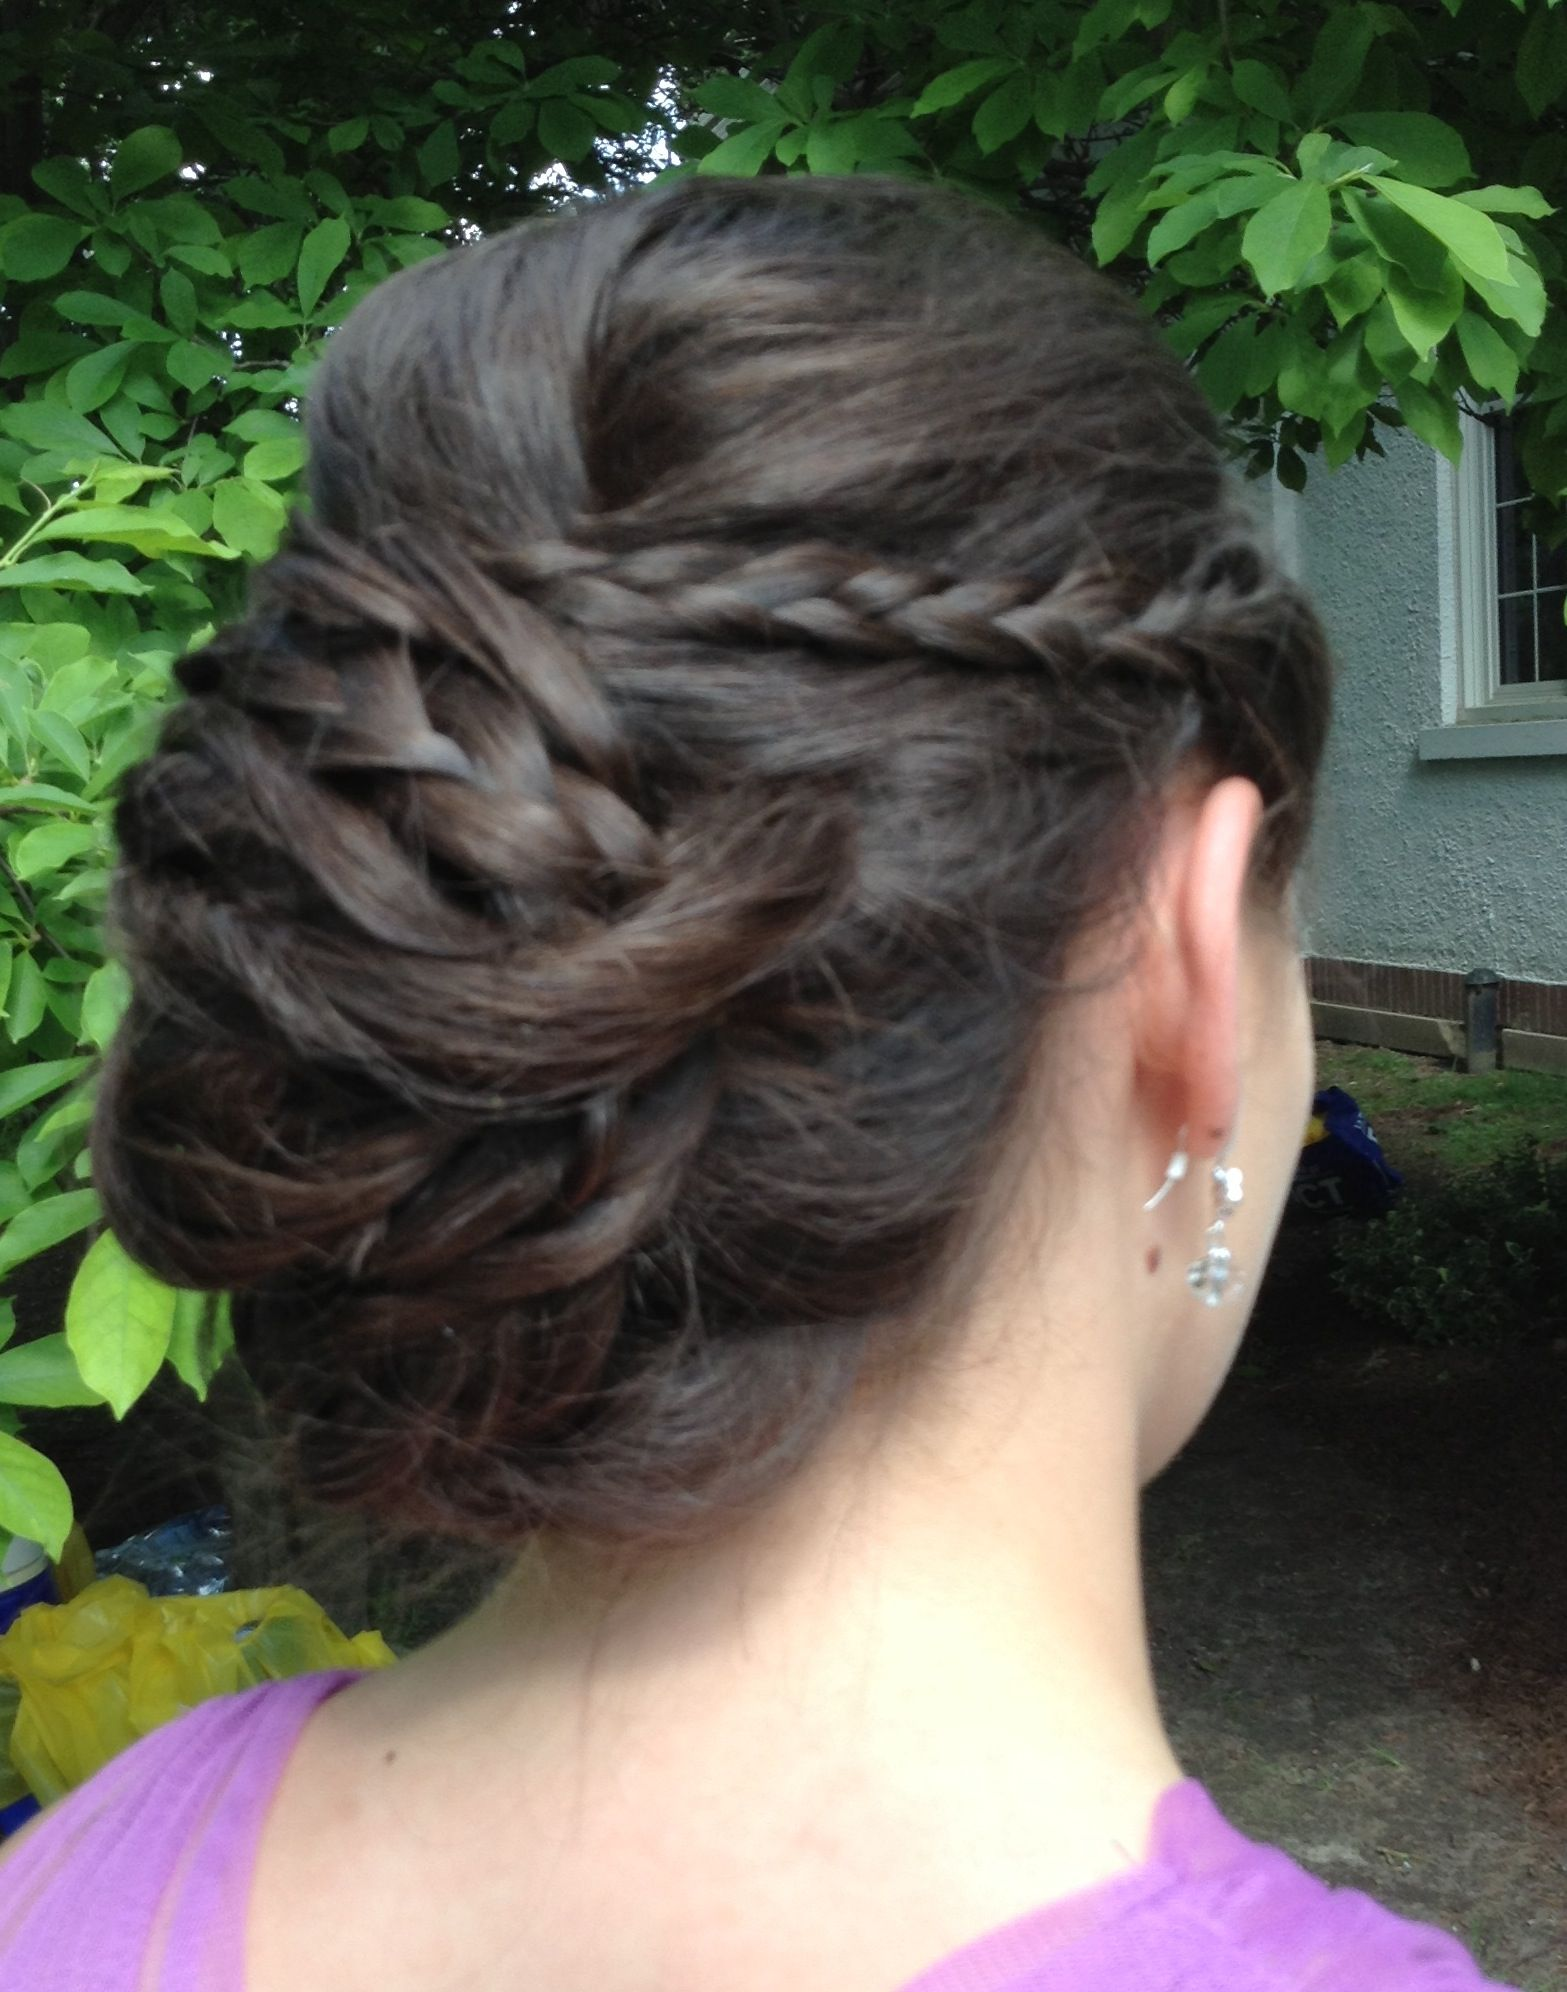 hair for 8th grade graduation(: | hair | pinterest | hair style